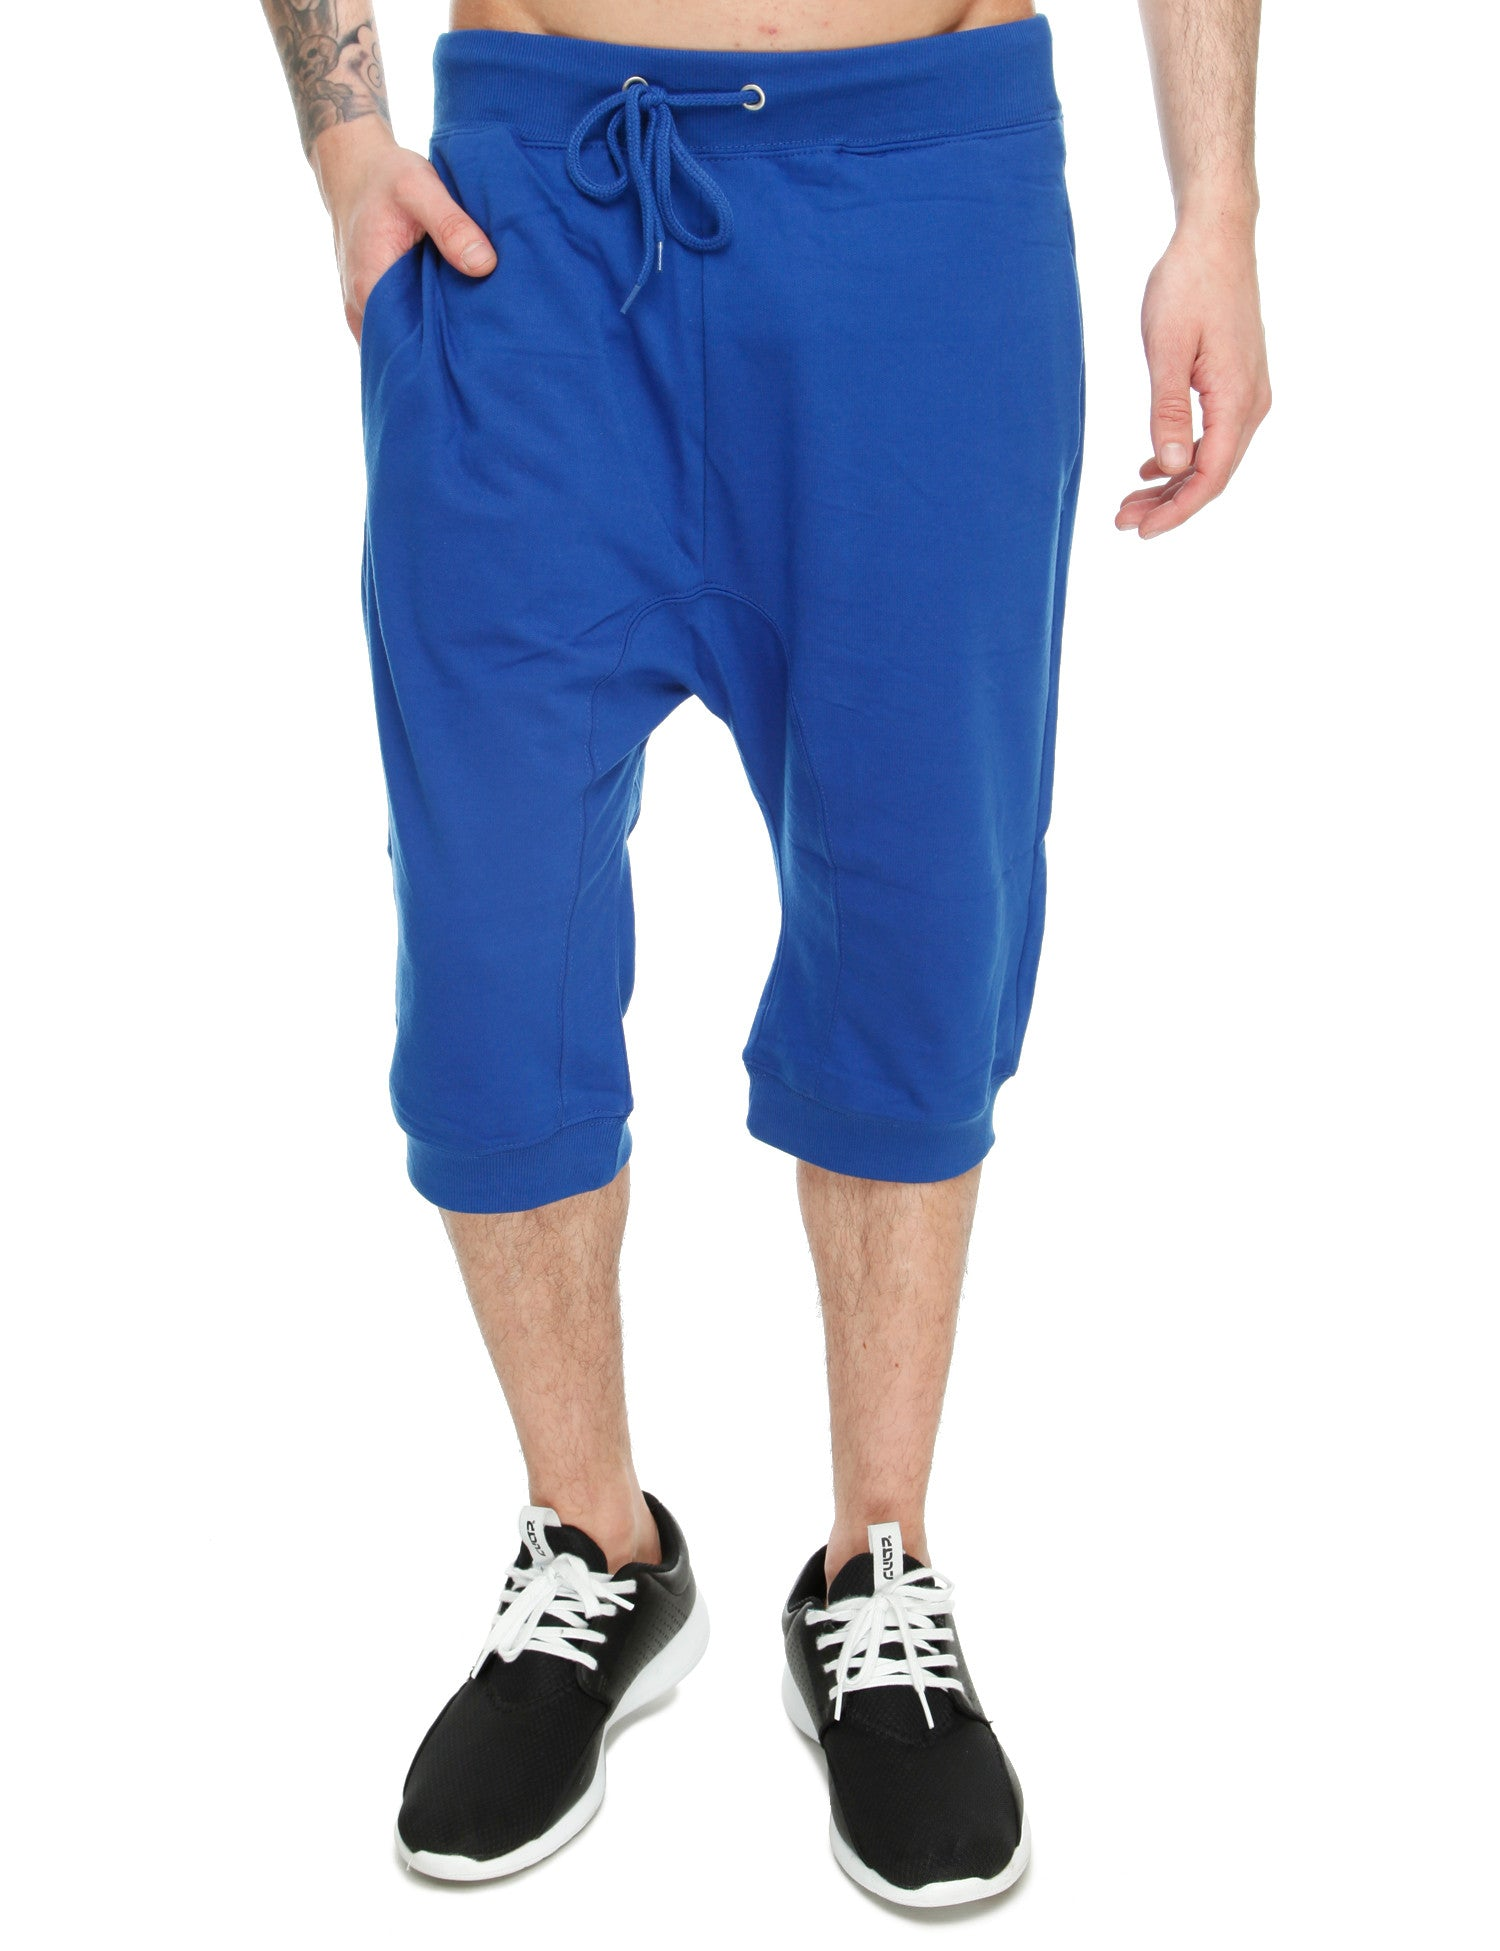 Royal Blue French Terry Shorts 44022SH Royal Blue